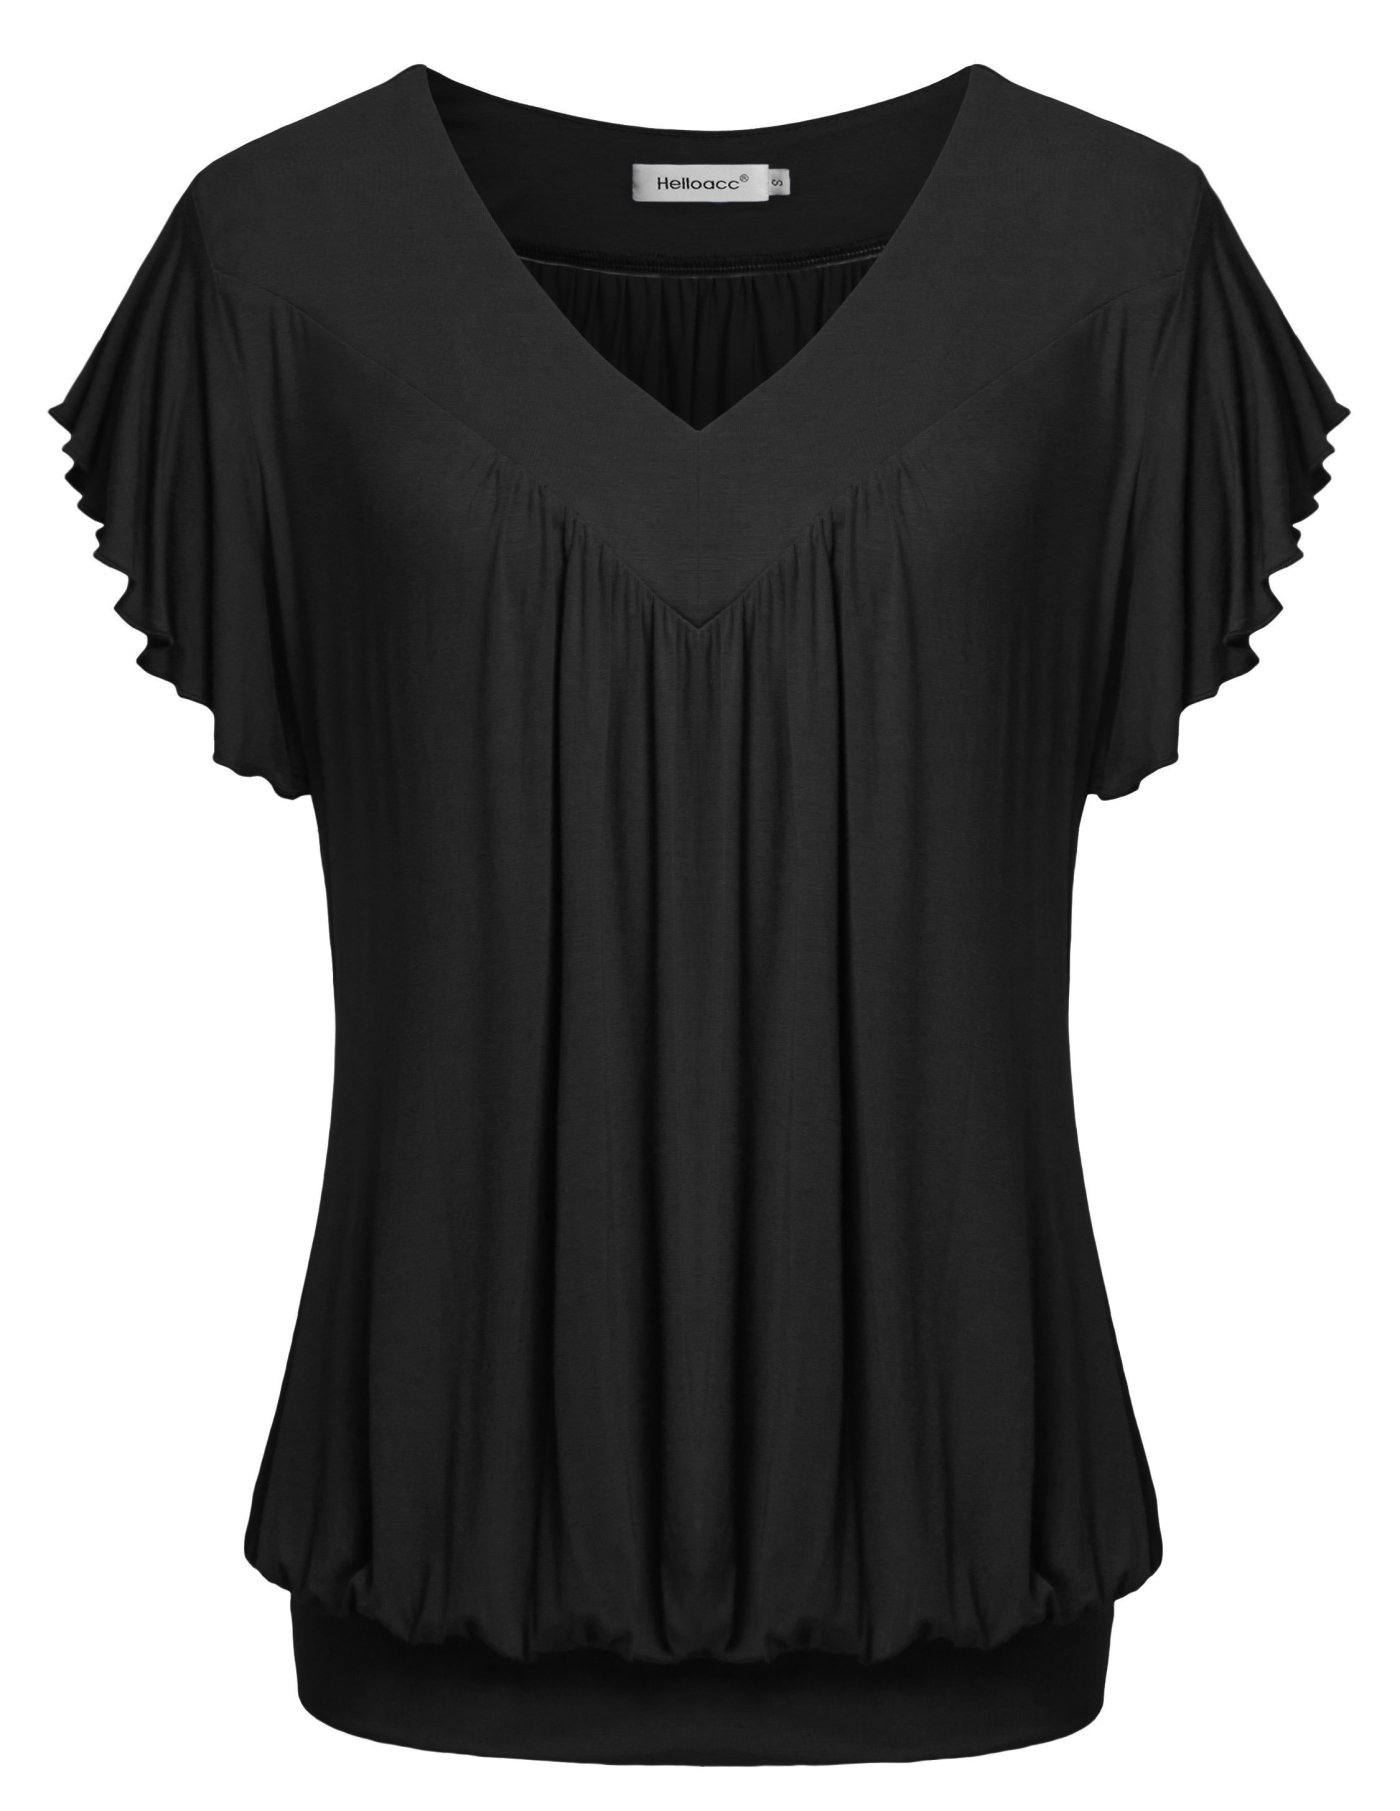 Helloacc Women Short Sleeve Tops,Summer V Neck Tees Comfy Pleated Relaxed Fit Shirts Stylish Office Airy Blouses Black M